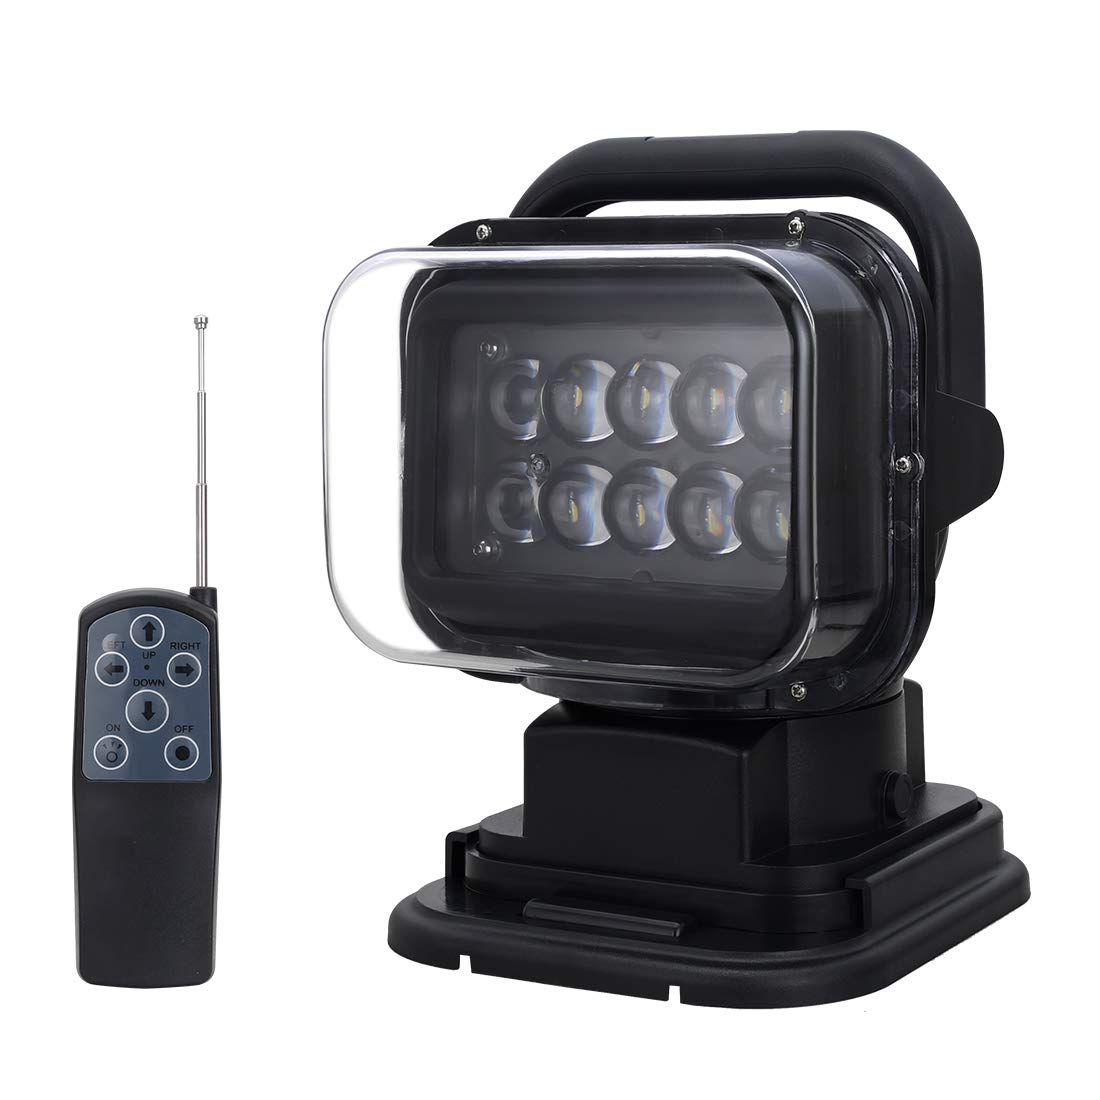 QUNSUN LED Spotlight 12V 50W LED Search Light 360 Degree LED Rotating Remote Control Work Light with Magnetic Base for SUV Boat Home Security Protection Emergency Lighting Farm Field Garden